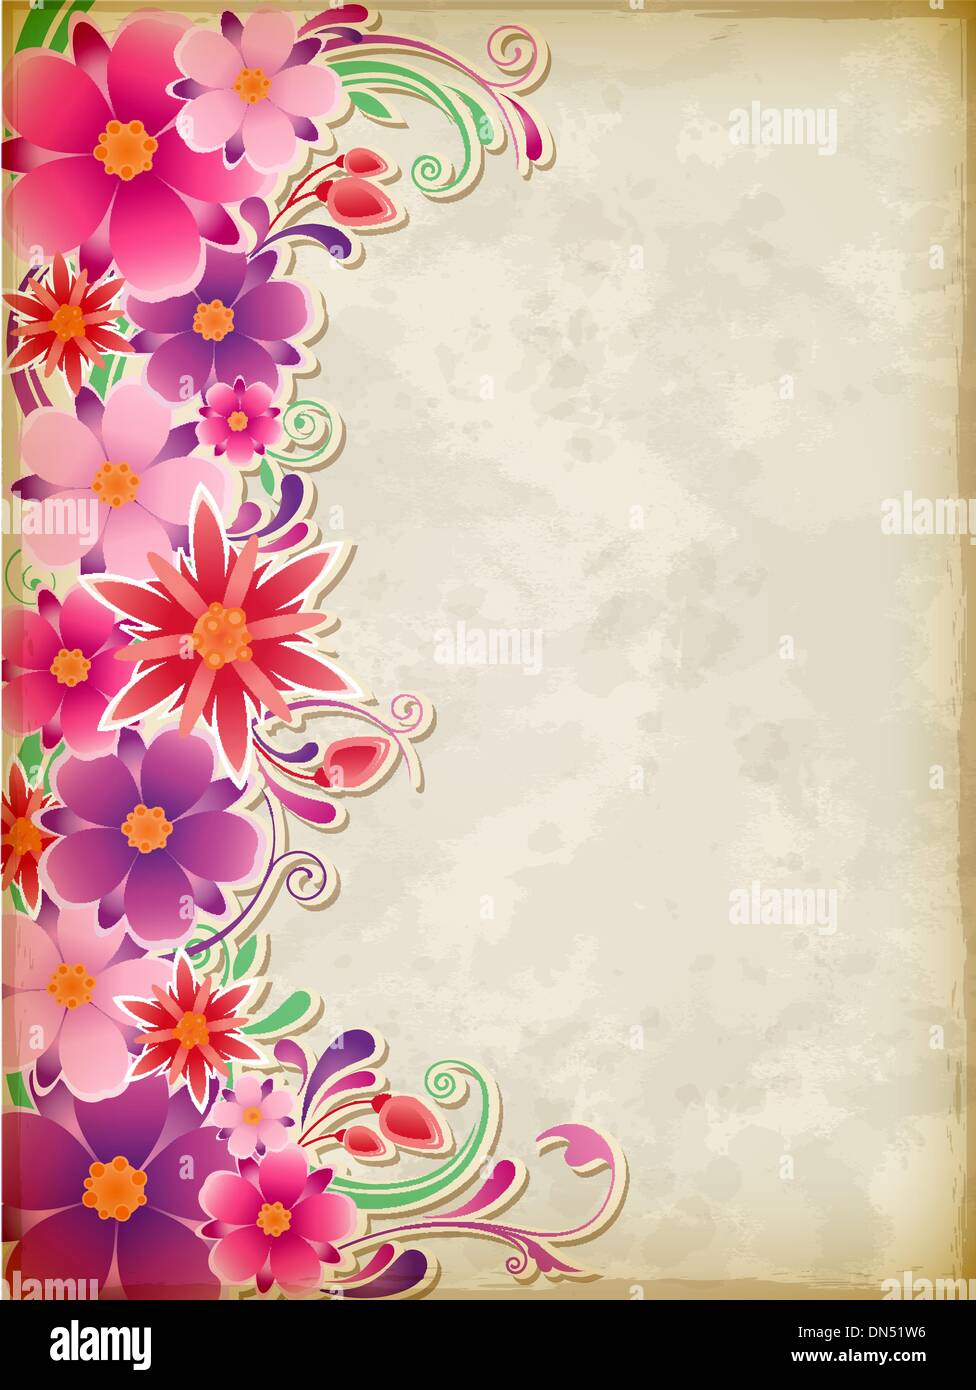 Pink Flower Textured Background Stock Vector Images Alamy